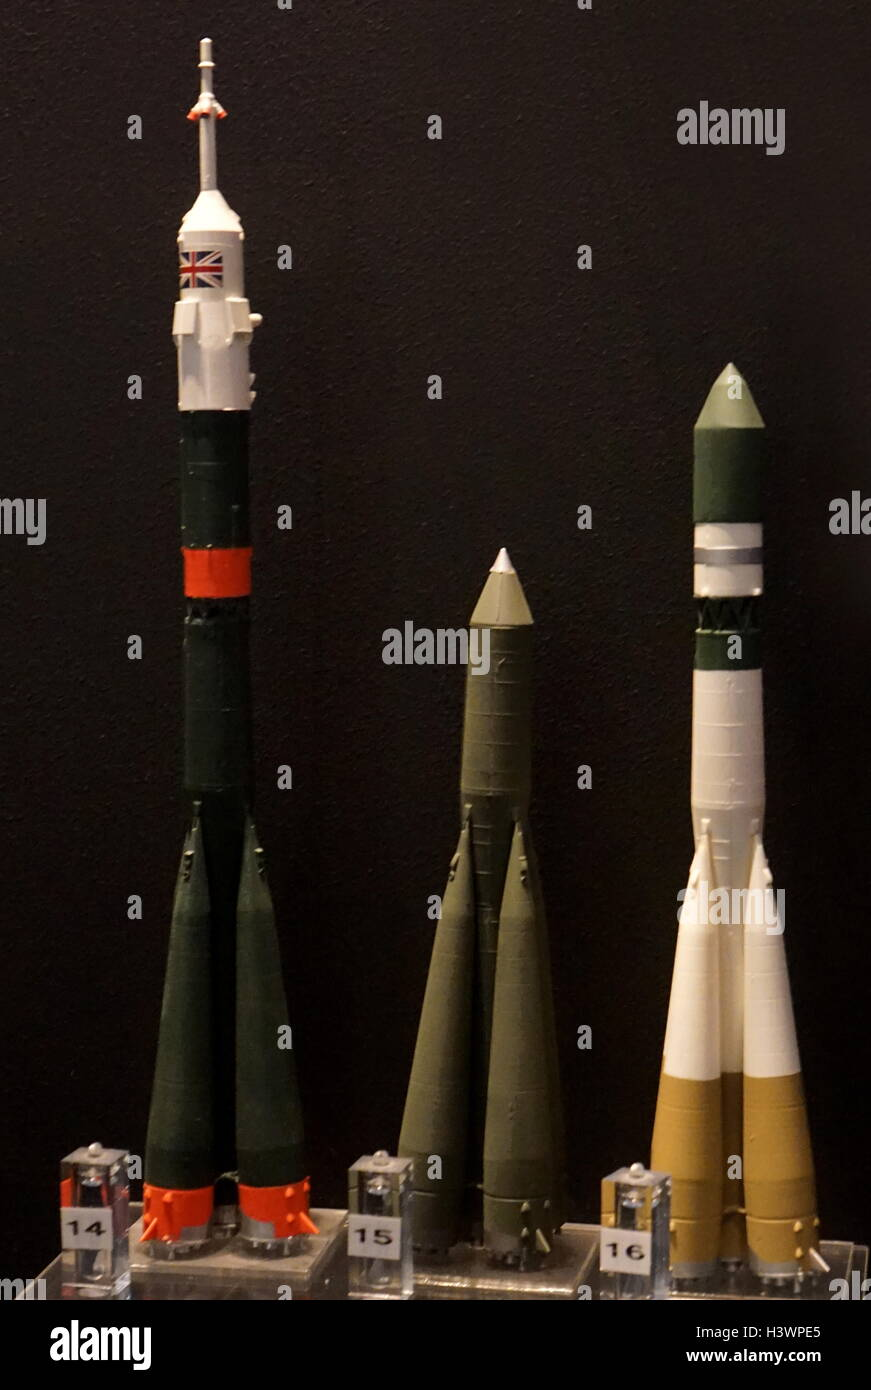 Space rocket launchers developed since the 1950s. Dated 20th Century - Stock Image